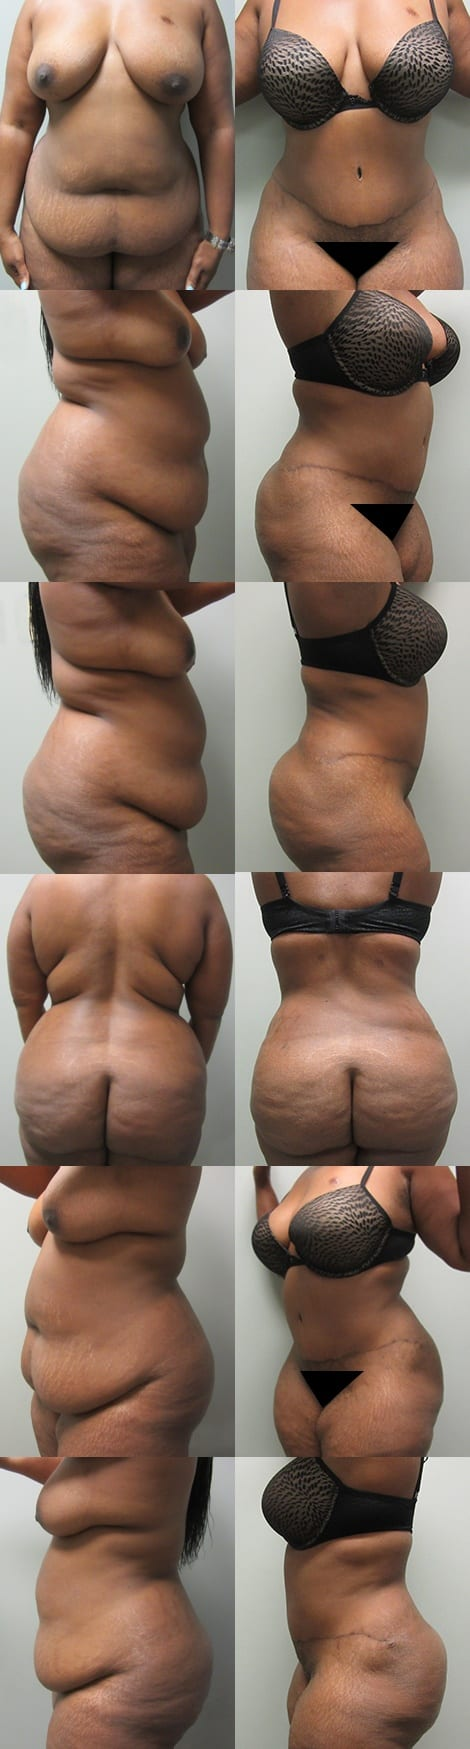 Tummy Tuck Before and After Photos - Case 1